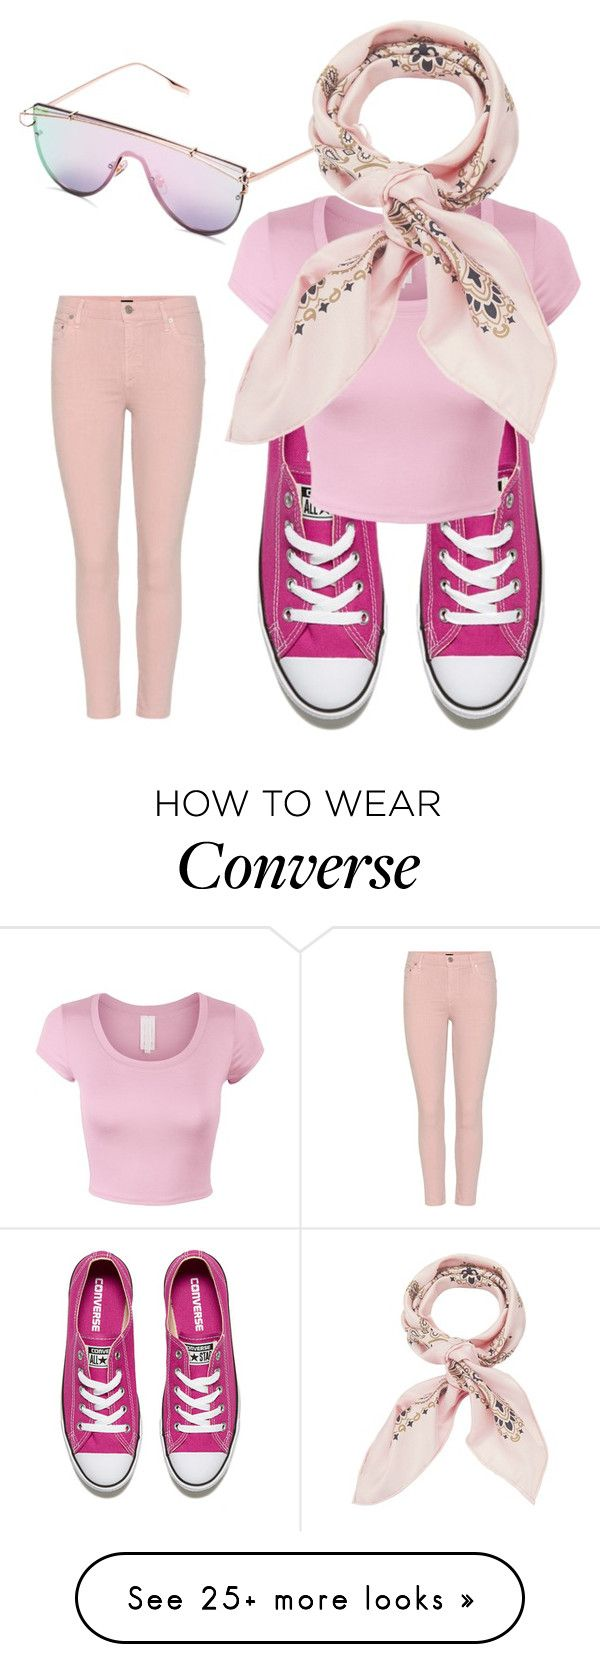 """Untitled #3832"" by bellagioia on Polyvore featuring Citizens of Humanity, Converse and Manipuri"